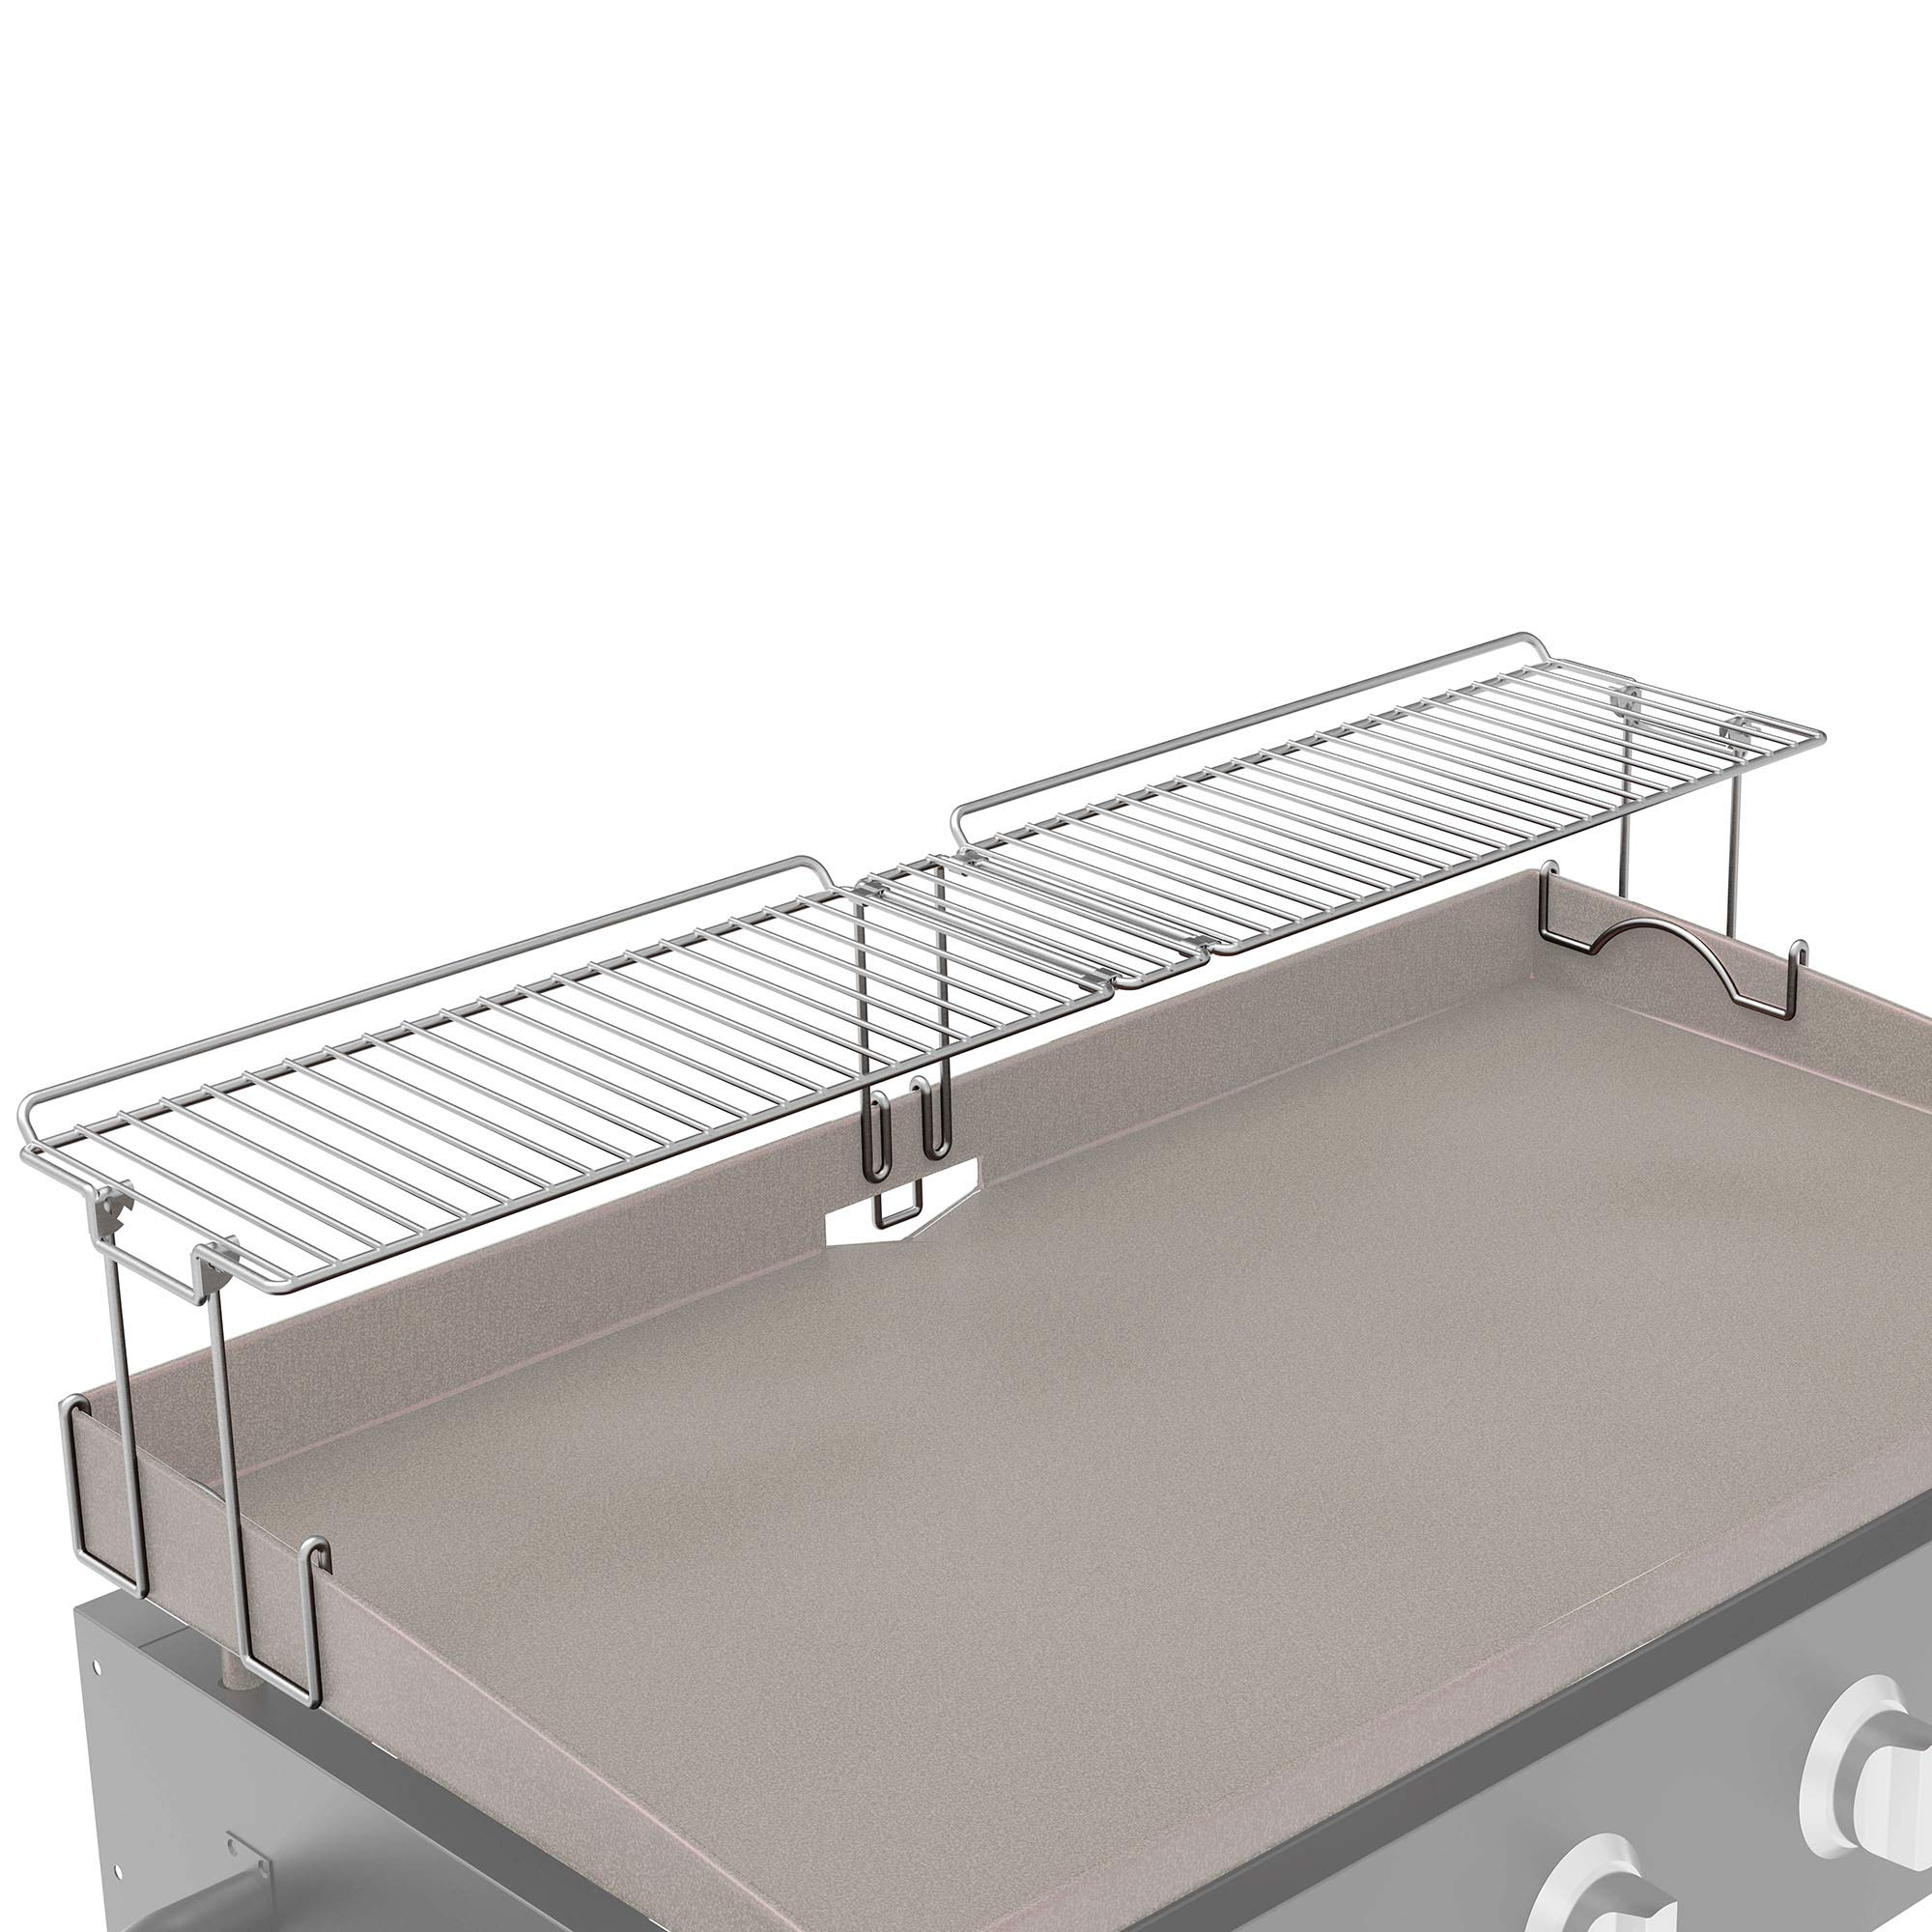 Yukon Glory, New and Improved Griddle Warming Rack, Steel, Easily Clips On, Designed for Blackstone 36 Inch Griddles by Yukon Glory